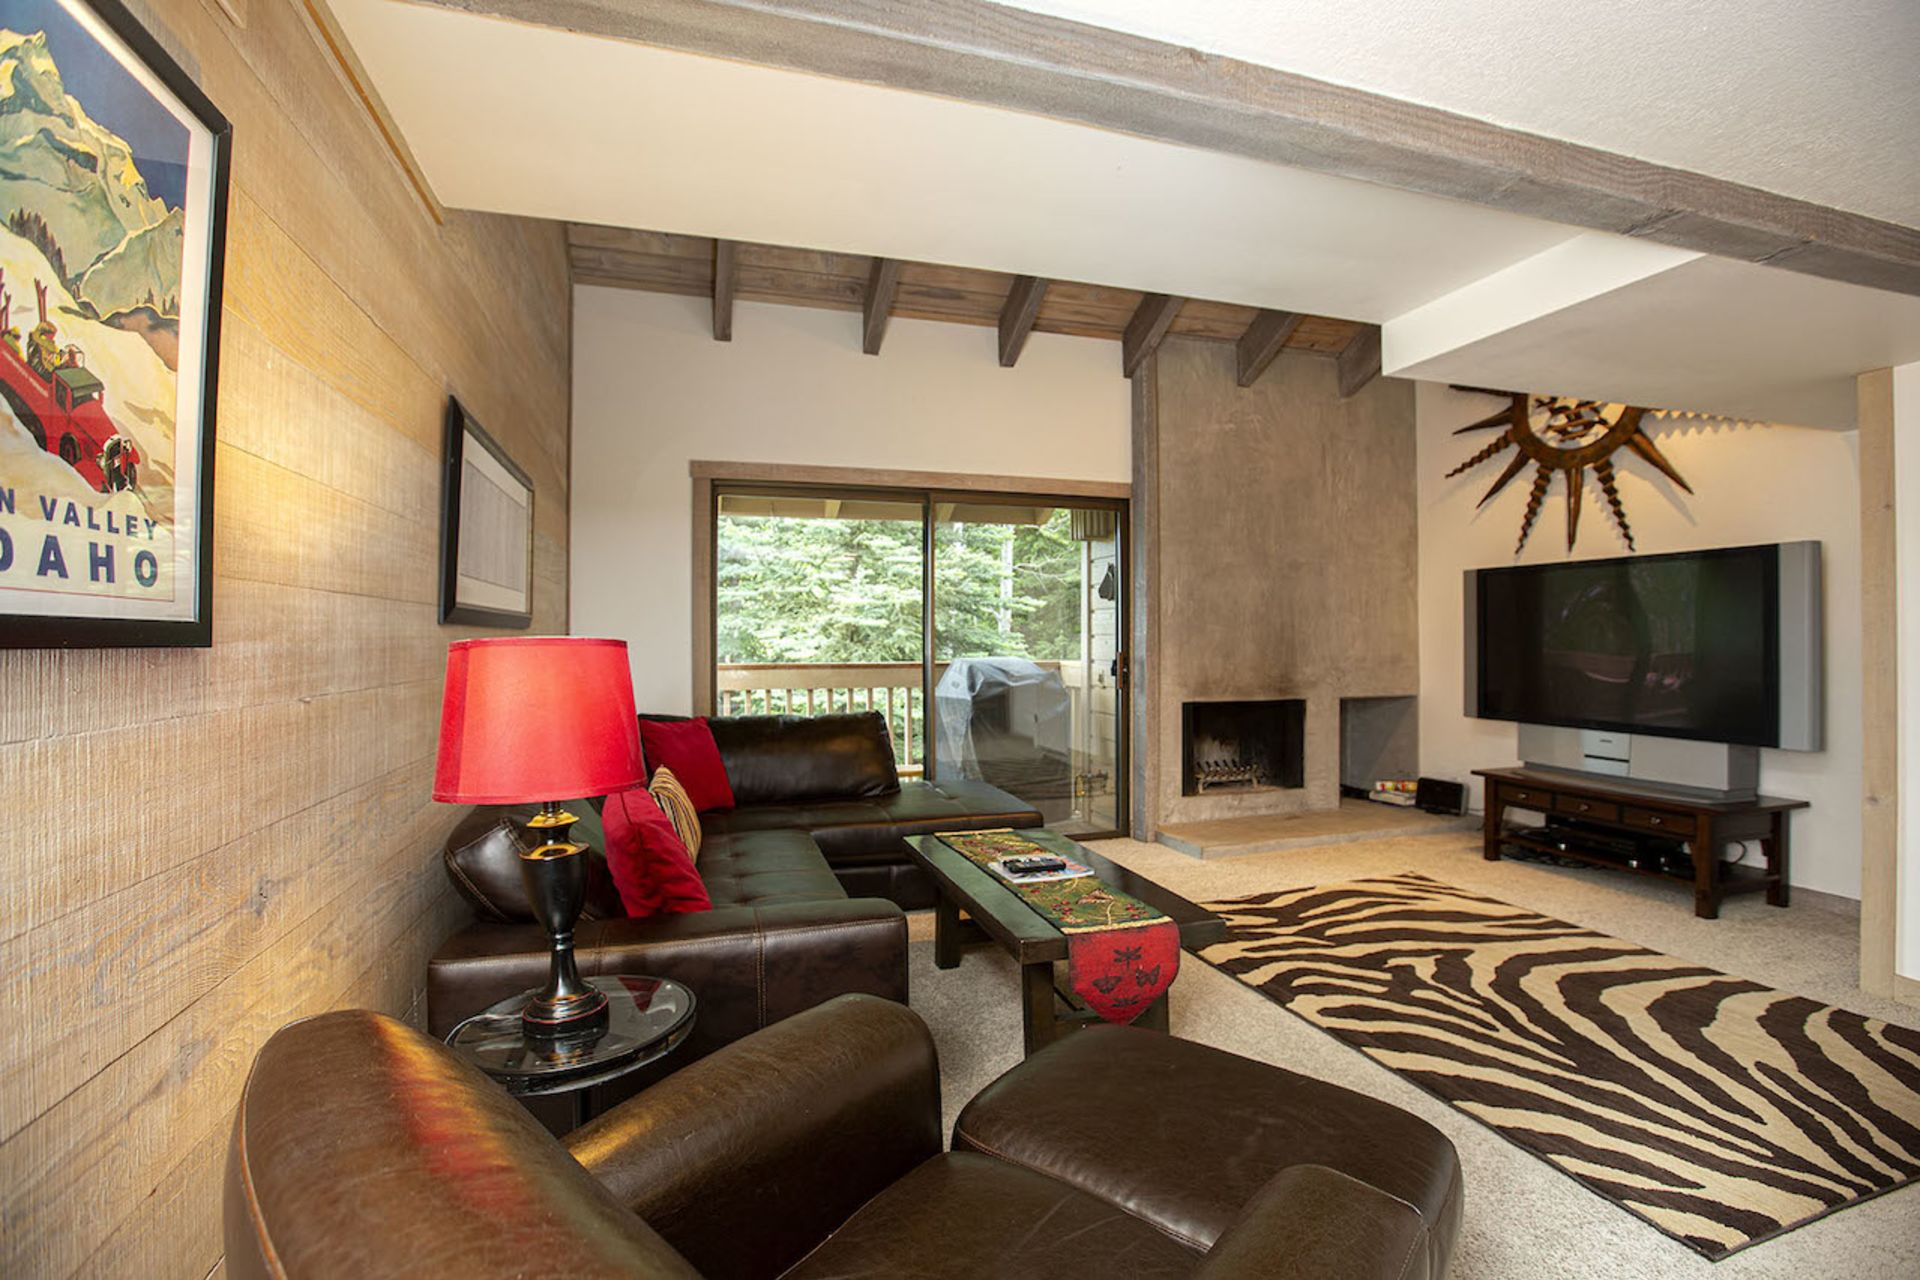 Ski-In and Ski-Out from this One of a kind Snowcreek Condo!